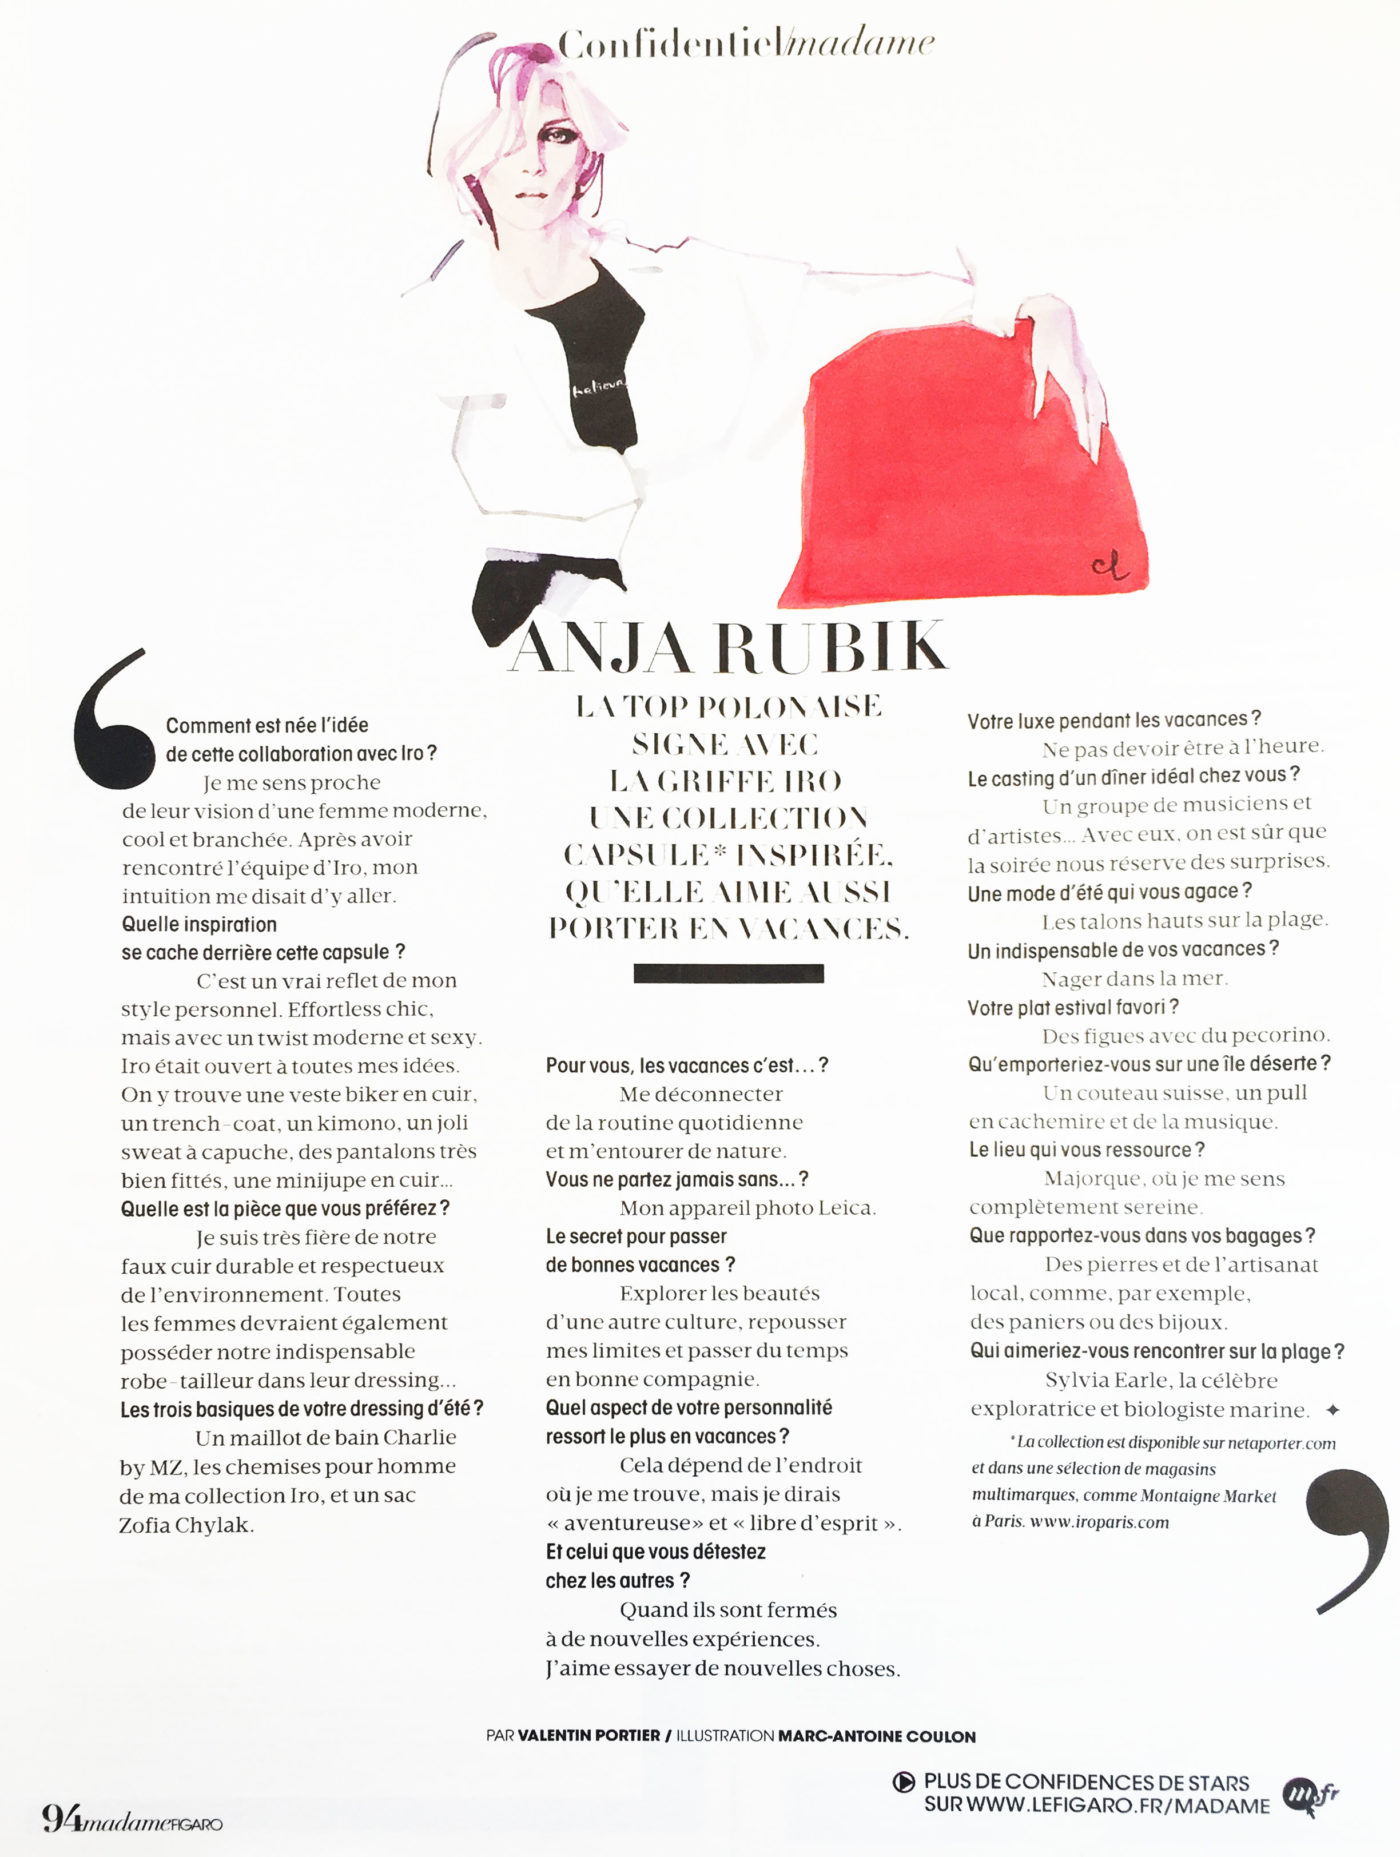 Le Figaro Madame August 2016